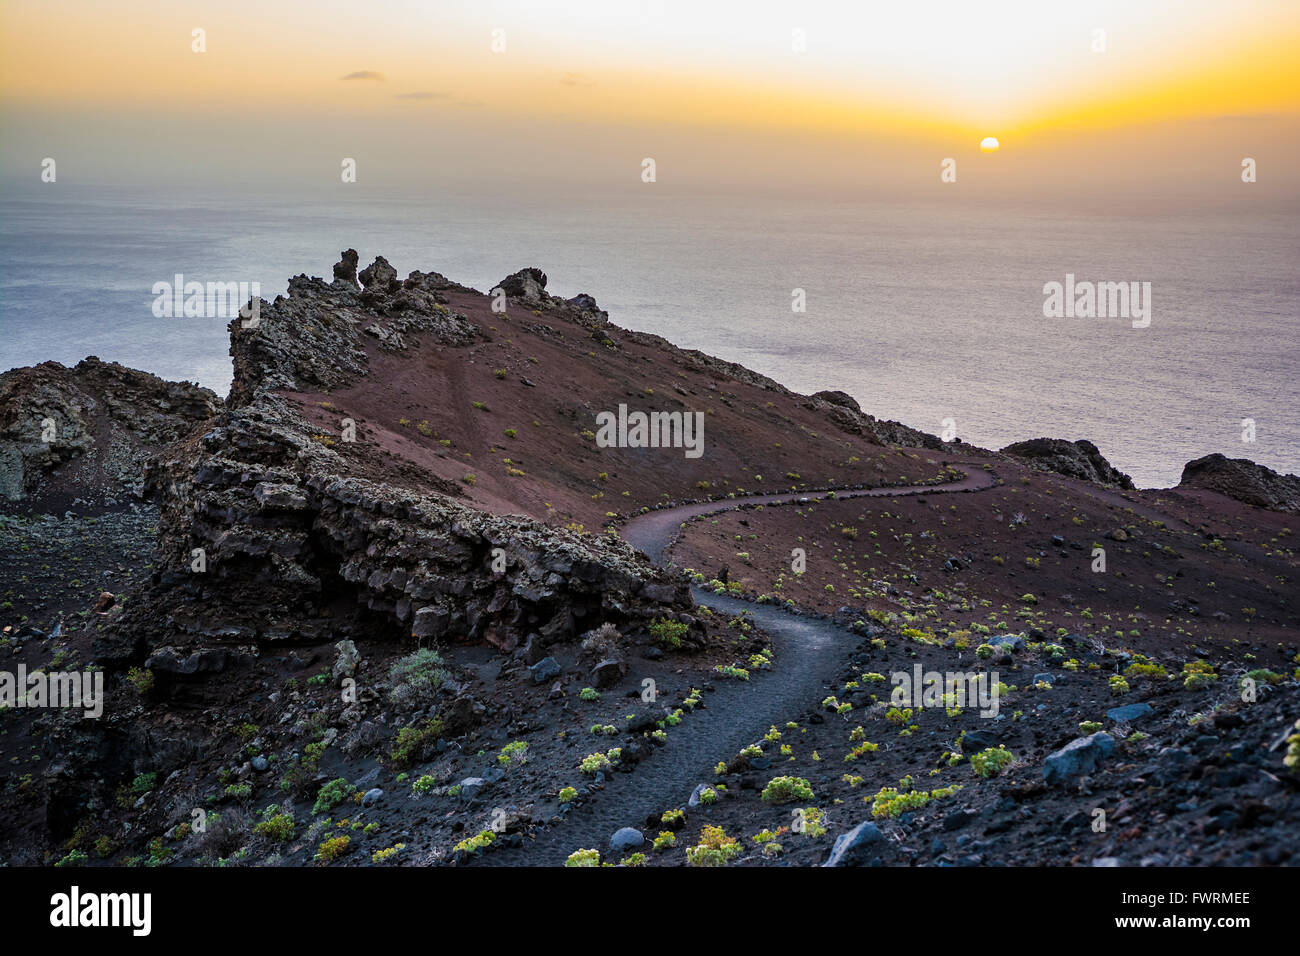 Footpaths near the Teneguía volcano. Fuencaliente de la Palma, La Palma, Tenerife, Canary Islands, Spain - Stock Image